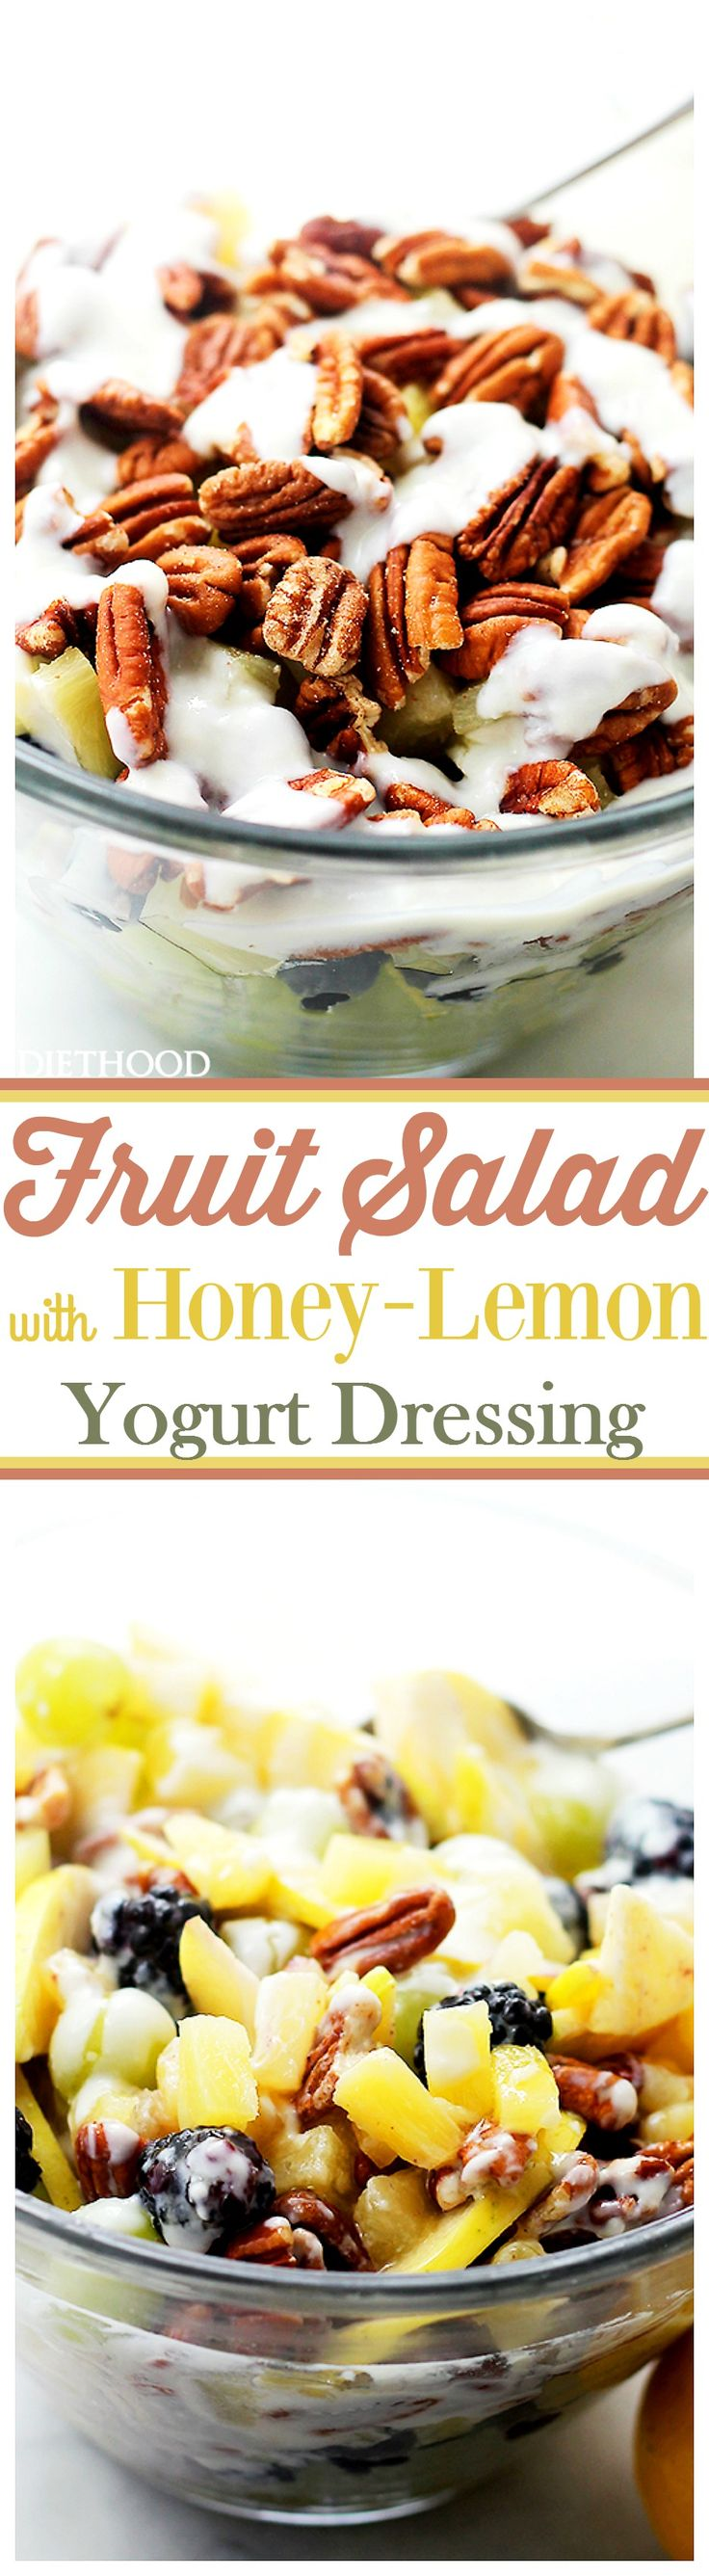 Mixed Fruit Salad with Honey-Lemon Yogurt Dressing - Perfect Summer Fruit Salad with grapes, blackberries, apples, pineapples and crunchy pecans mixed with a simple, yet cool and refreshing Honey-Lemon Yogurt Dressing. #adv